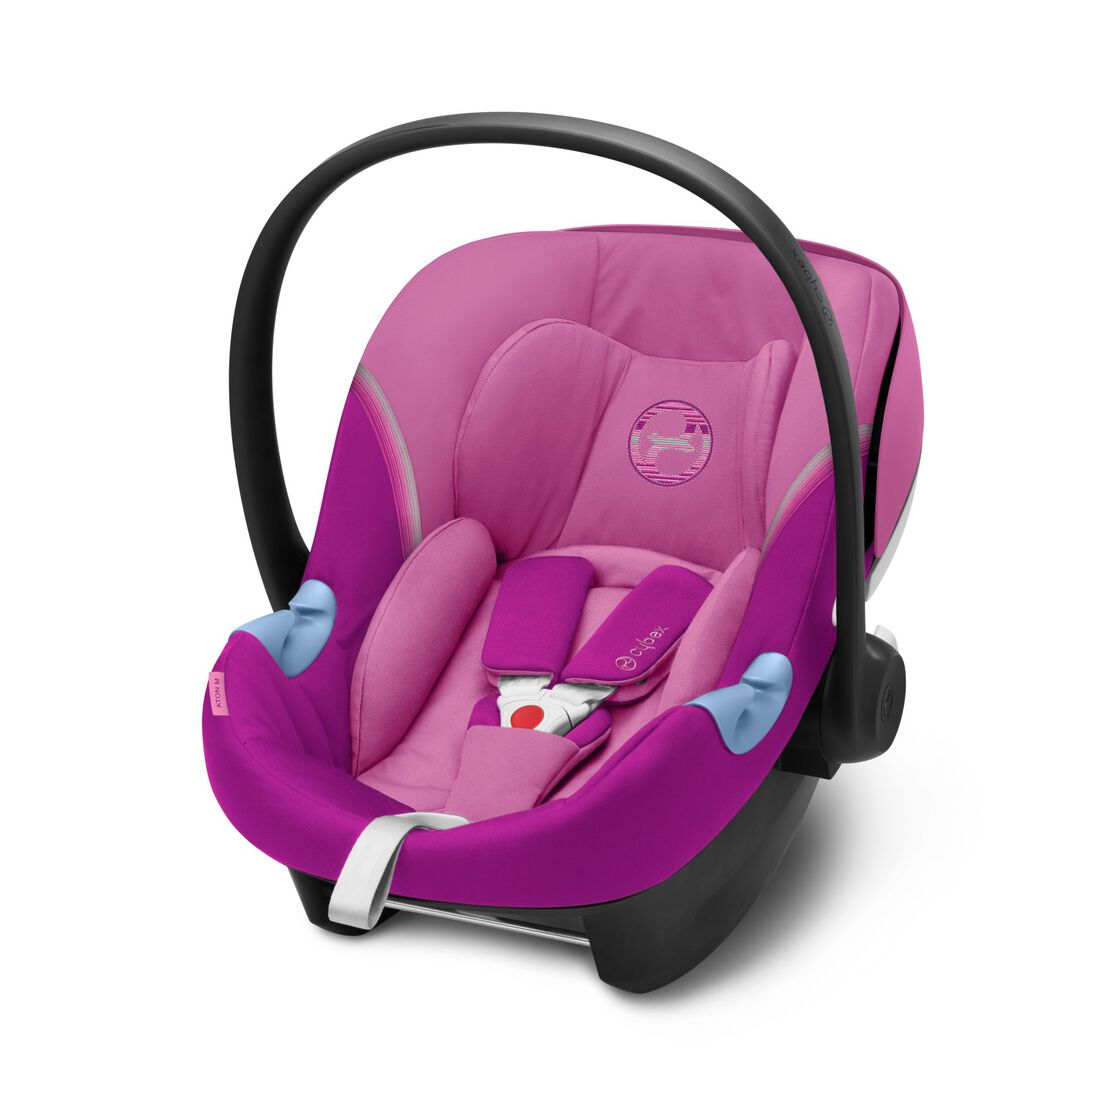 CYBEX Aton M i-Size - Magnolia Pink in Magnolia Pink large image number 1